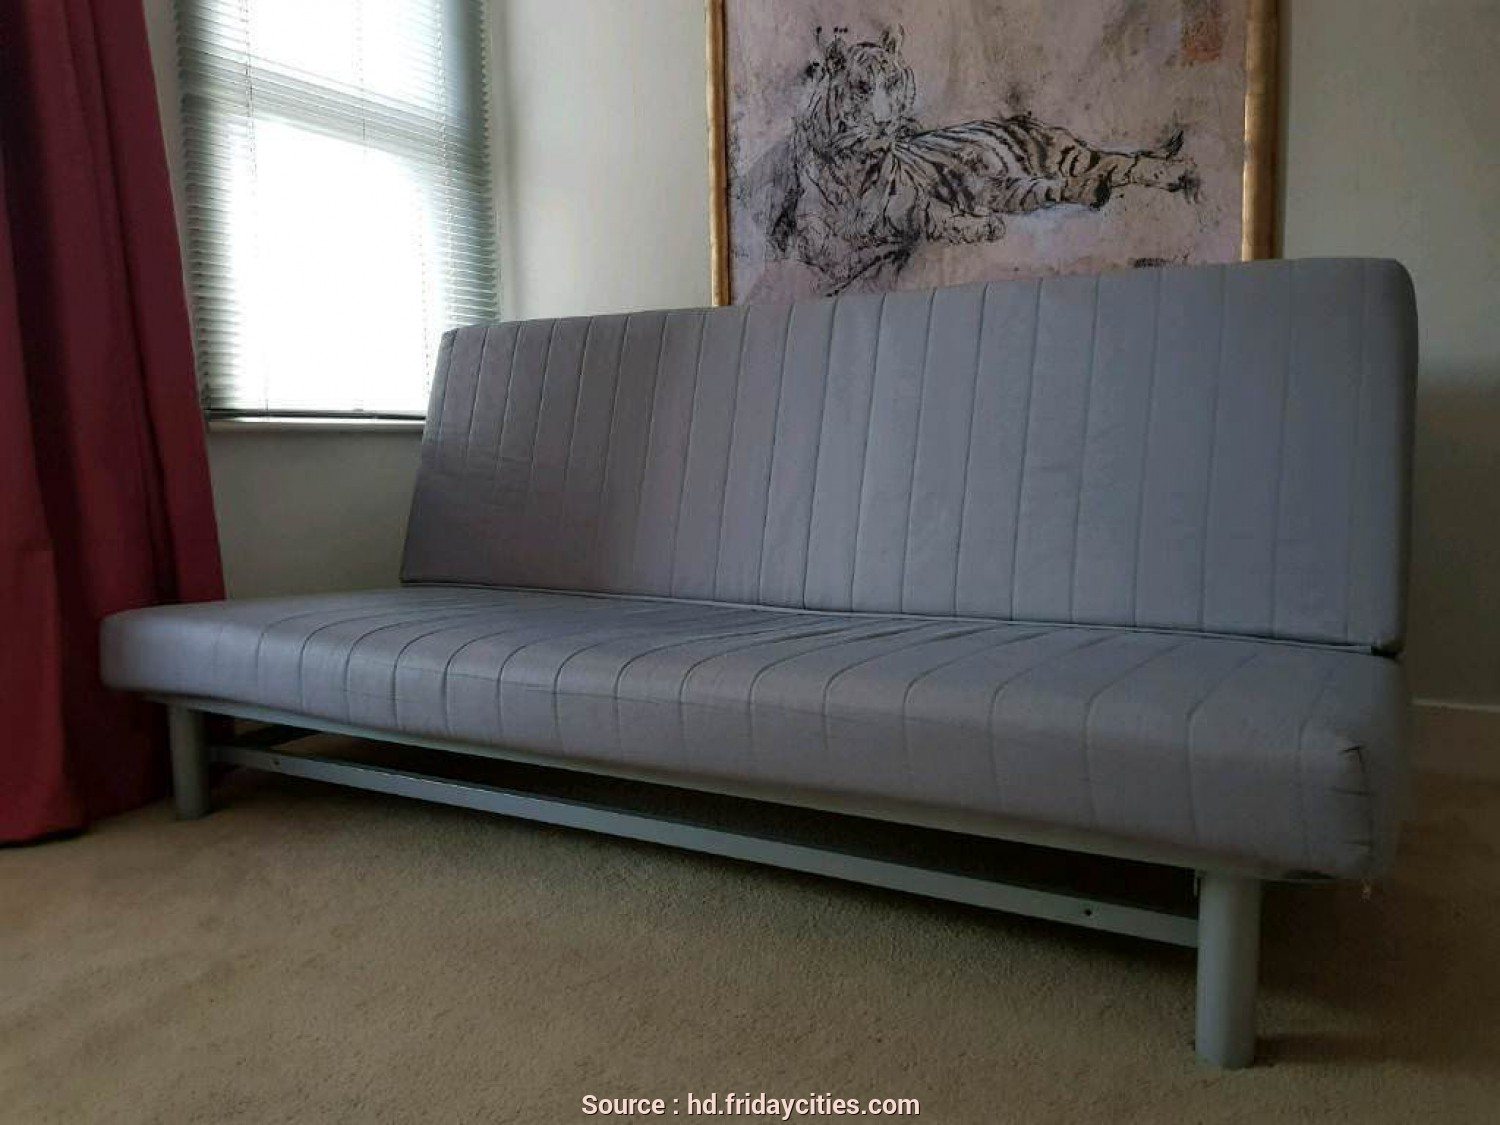 Beddinge Lovas Sofa, Ikea, Loveable Ikea Beddinge Lovas Sofa, Uk Ikea Beddinge Sofa King Sofa